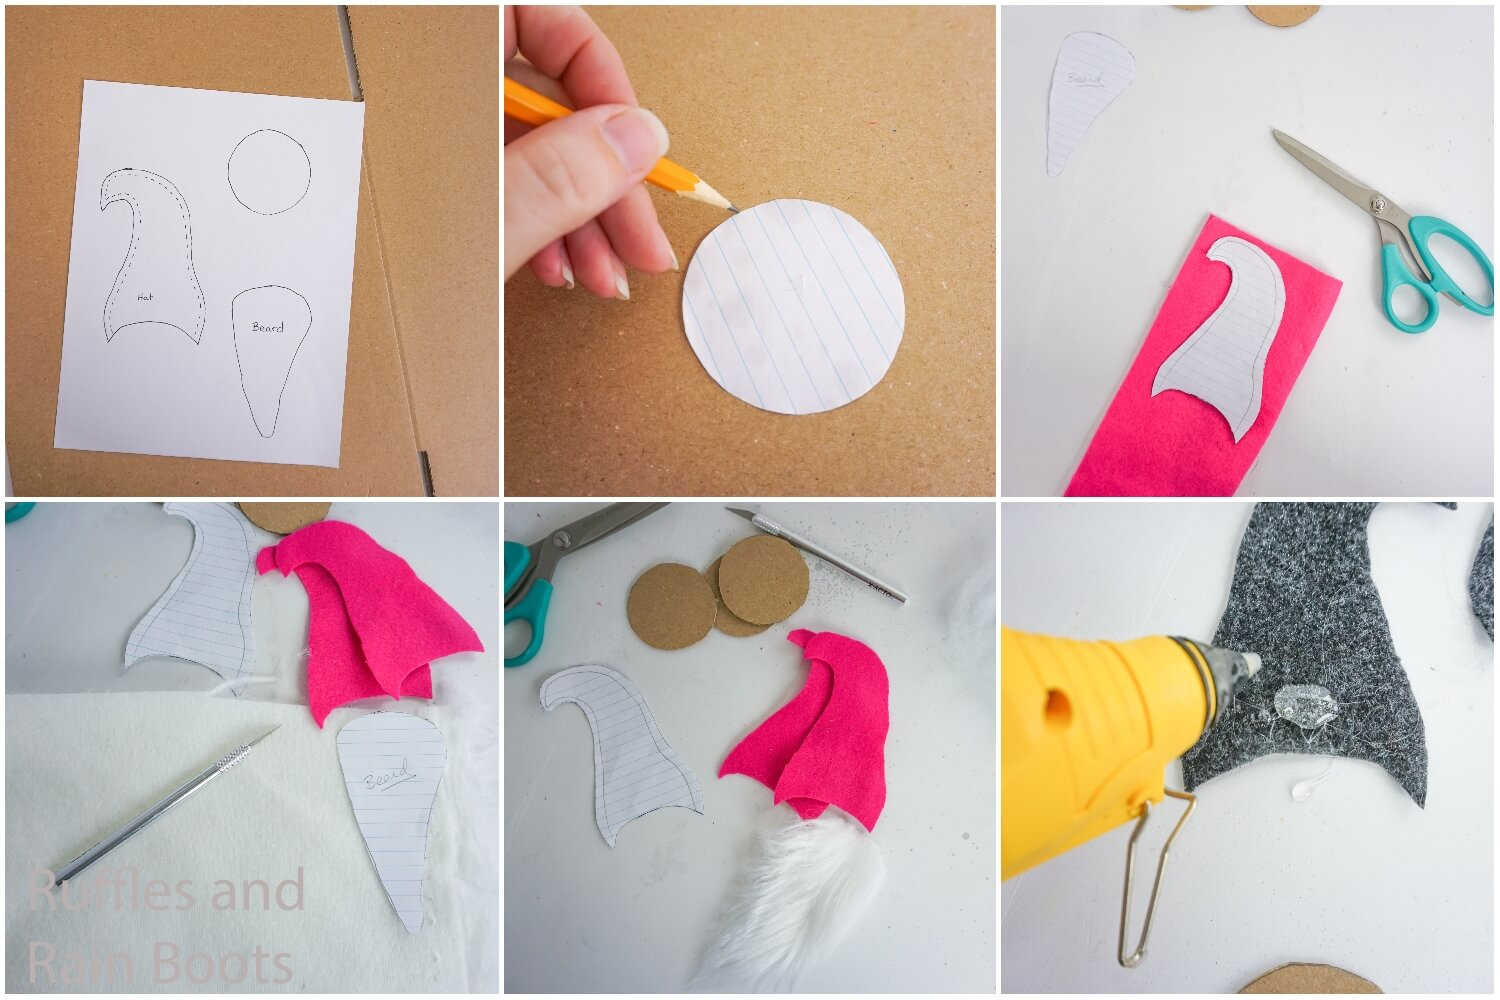 photo collage tutorial of how to make seasonal home sign by cutting out the pieces of the gnome and gluing them together